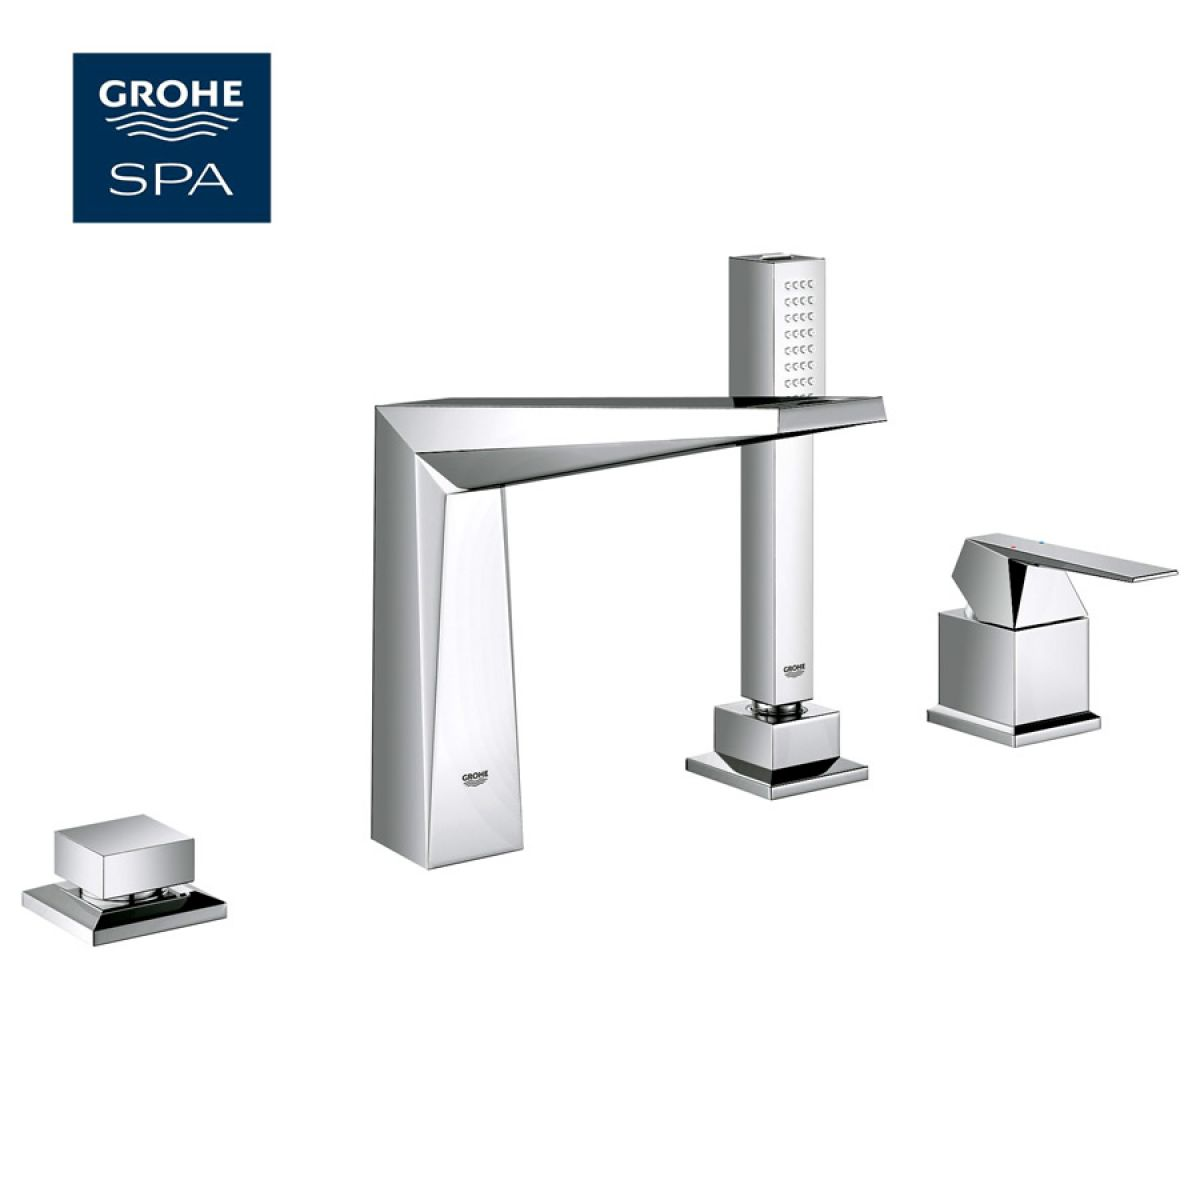 grohe allure brilliant 4 hole bath shower set uk bathrooms. Black Bedroom Furniture Sets. Home Design Ideas